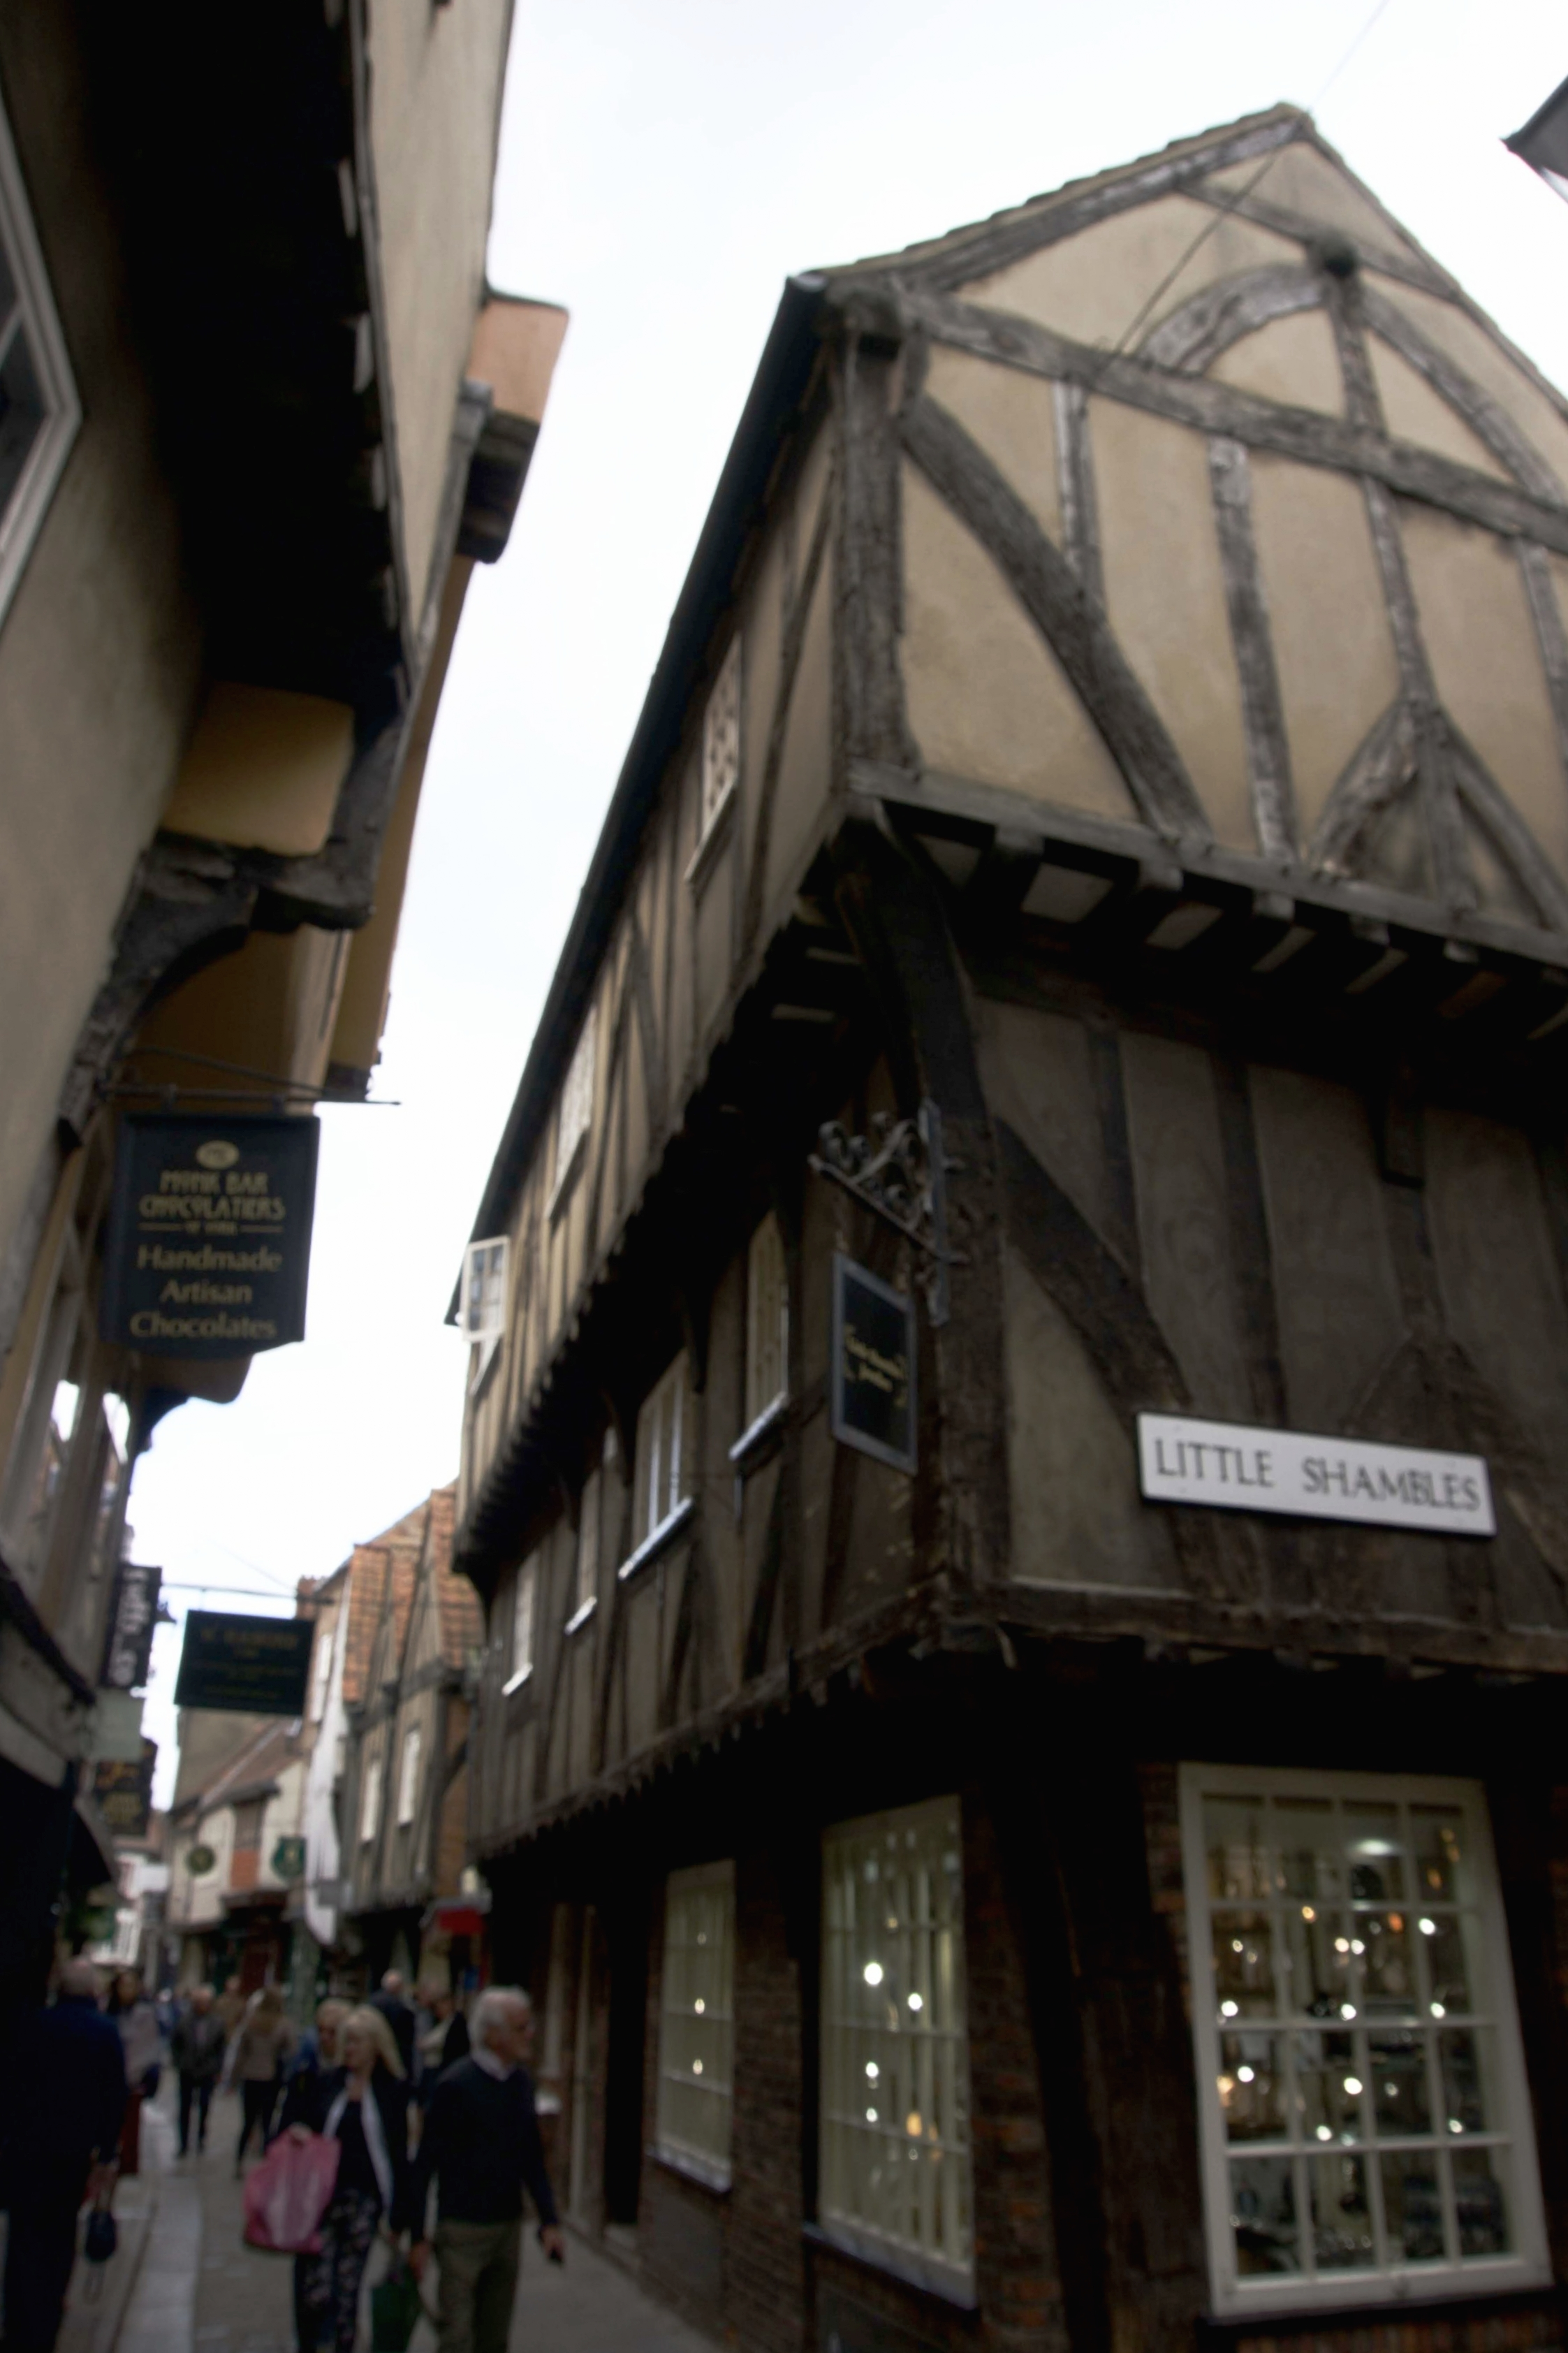 according to some, The Shambles inspired Diagon Alley